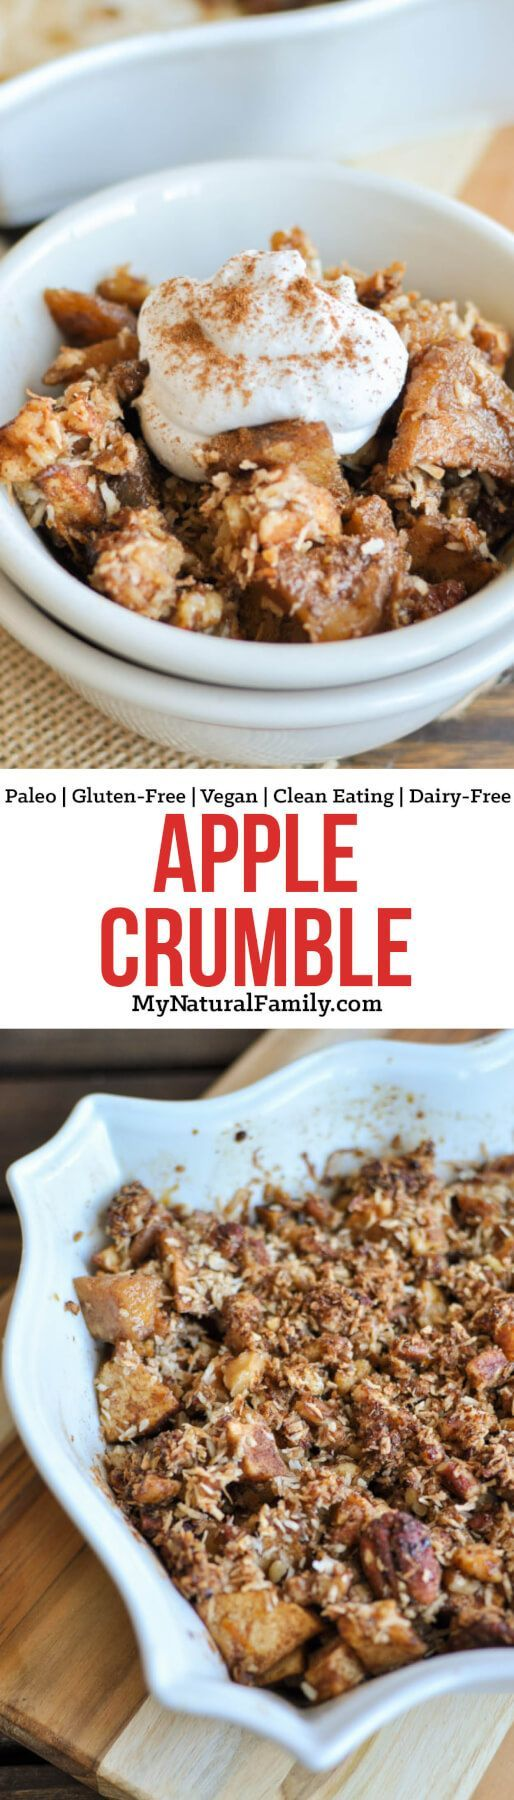 This Paleo apple crumble is a healthy dessert made without refined sugar and is easy to make with a simple pecan and walnut topping. {Gluten-Free, Clean Eating, Dairy-Free, Vegan}